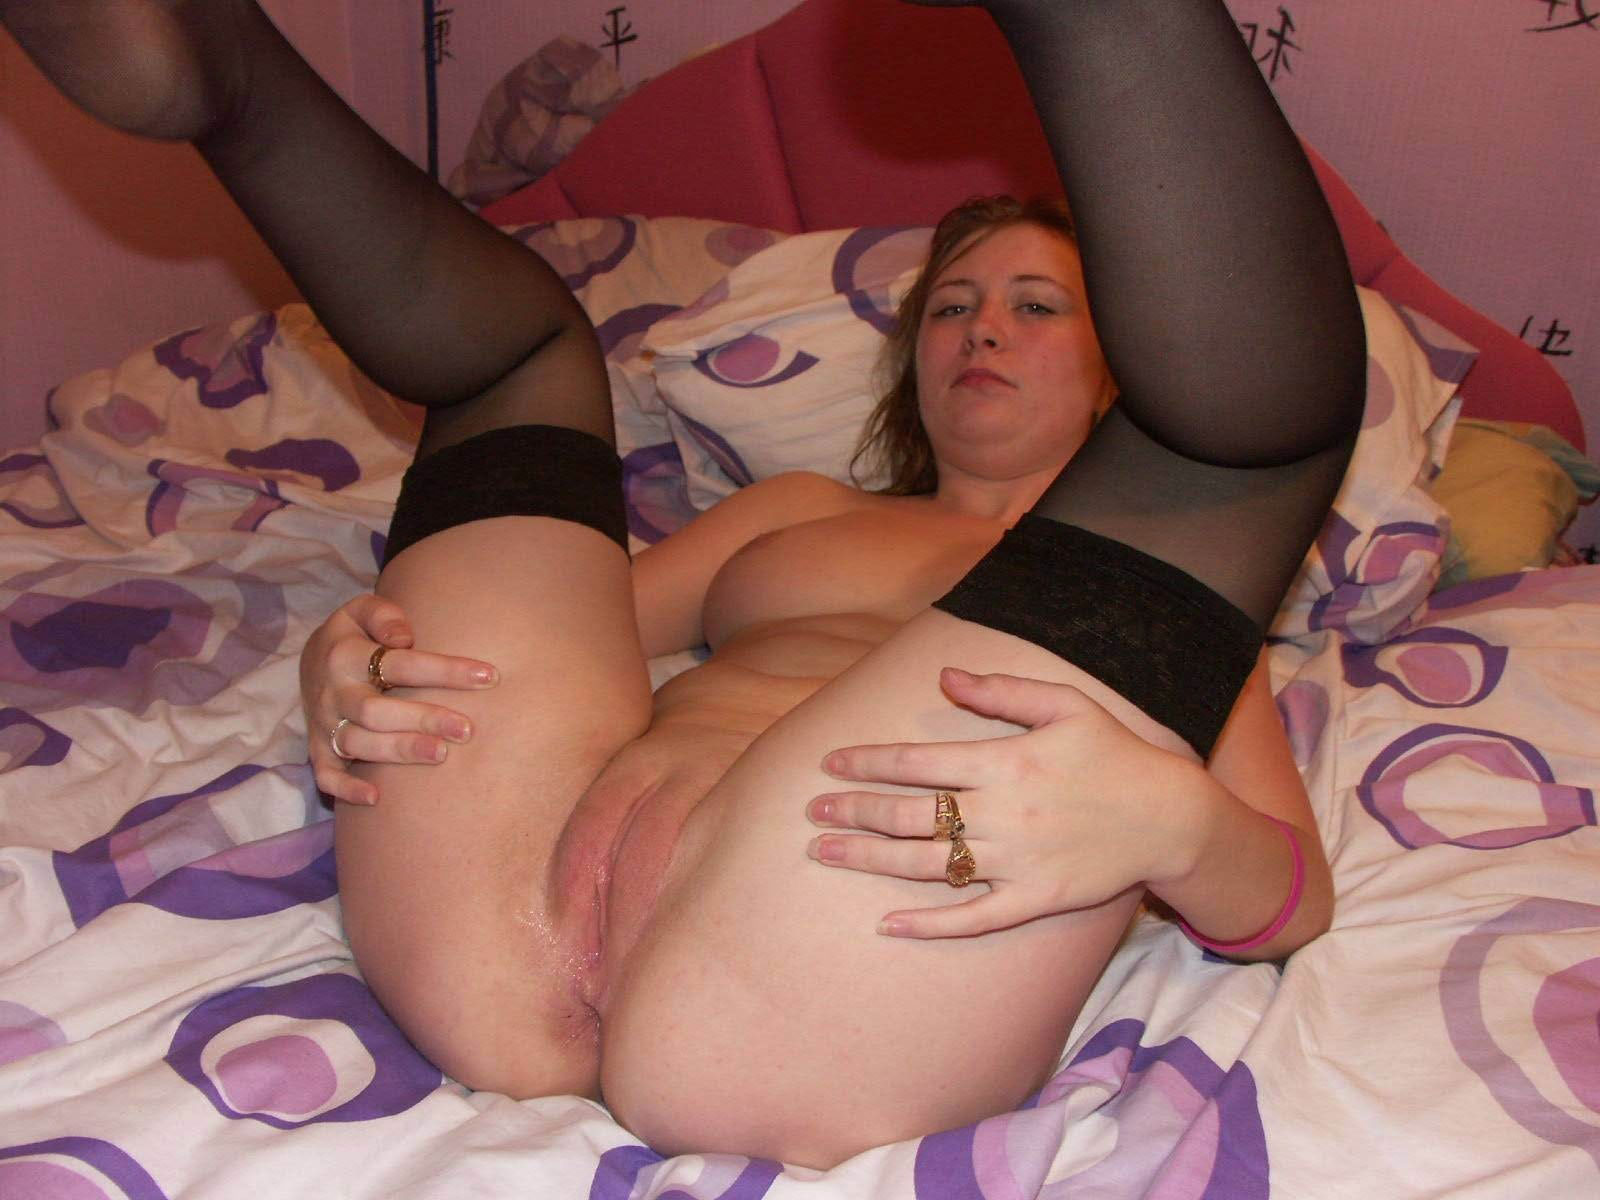 Wowsex pic adult photos